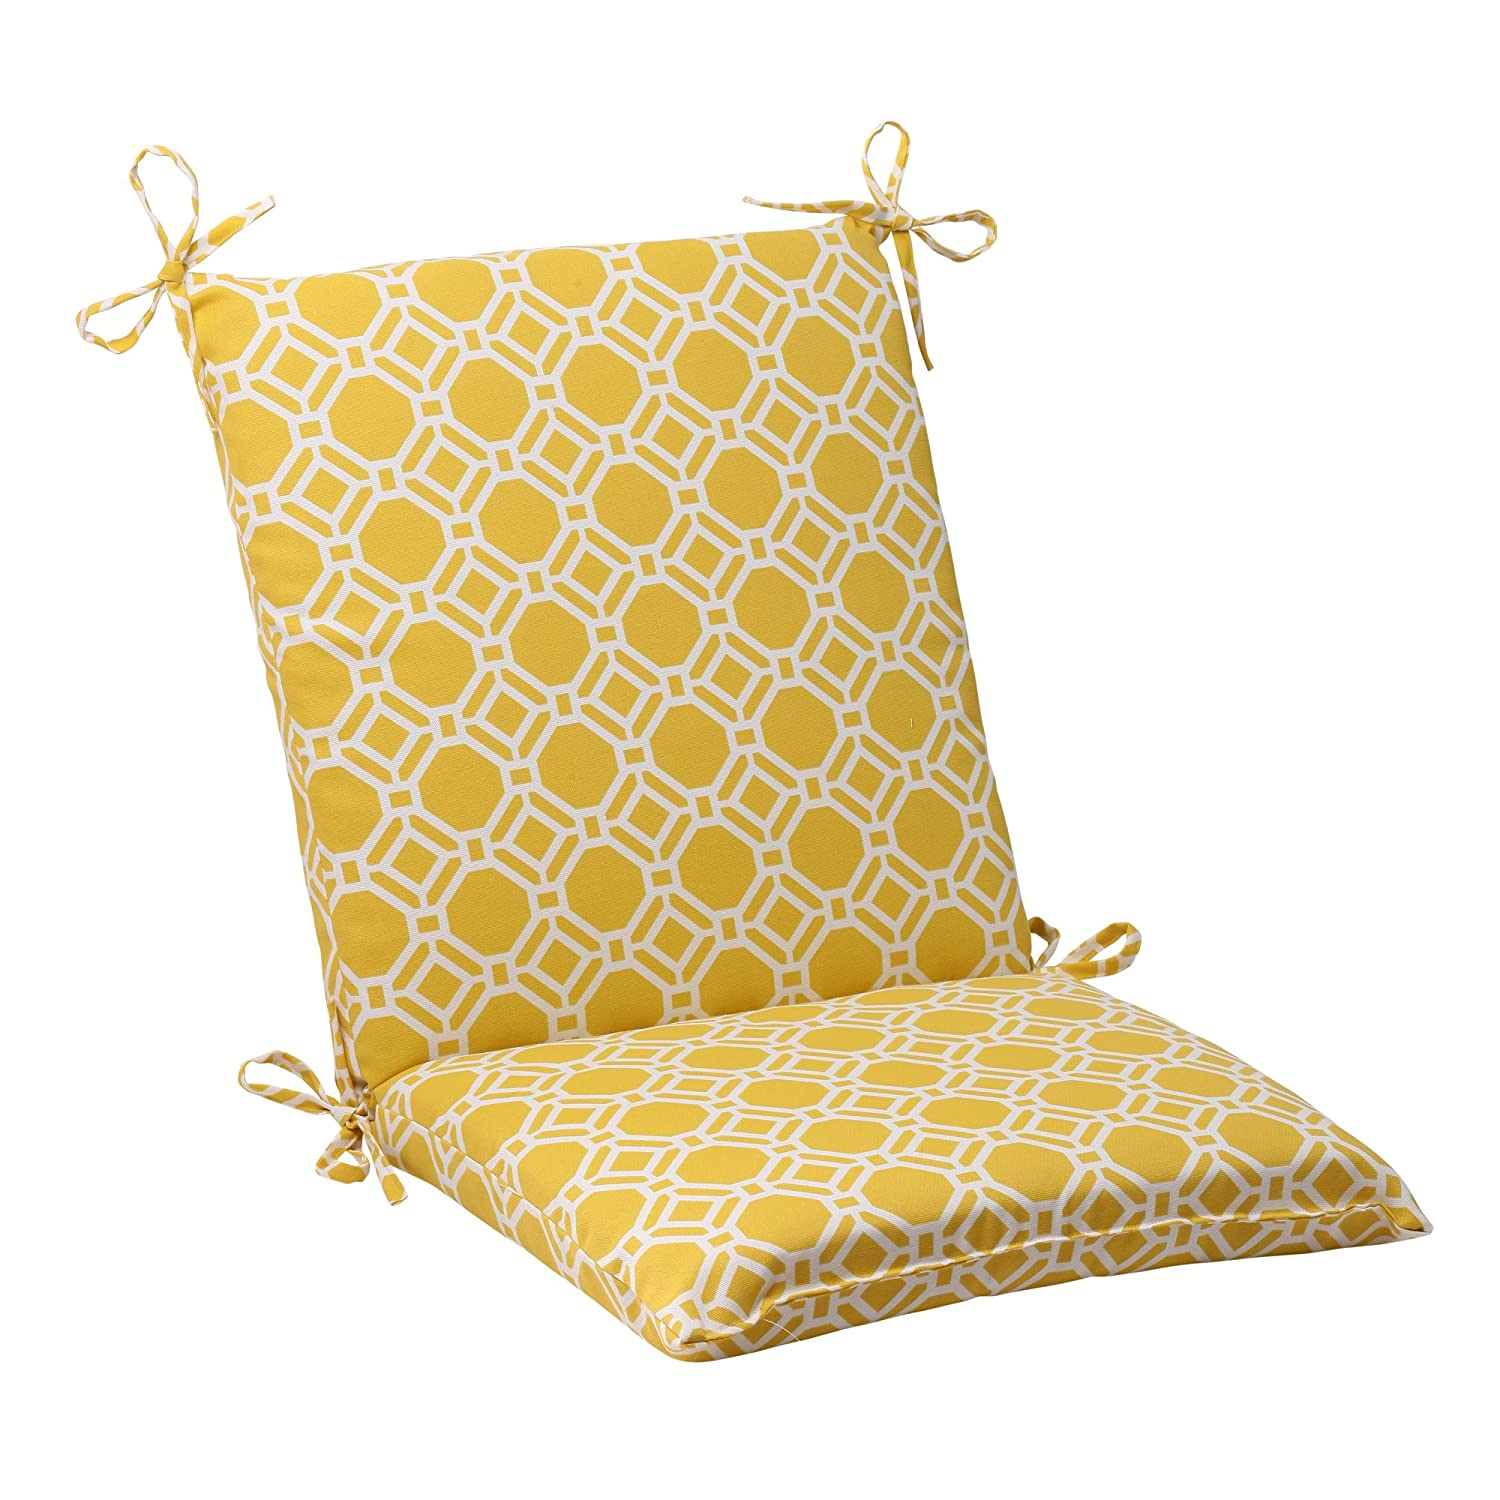 Pillow Perfect Outdoor Rossmere Squared Chair Cushion, Yellow